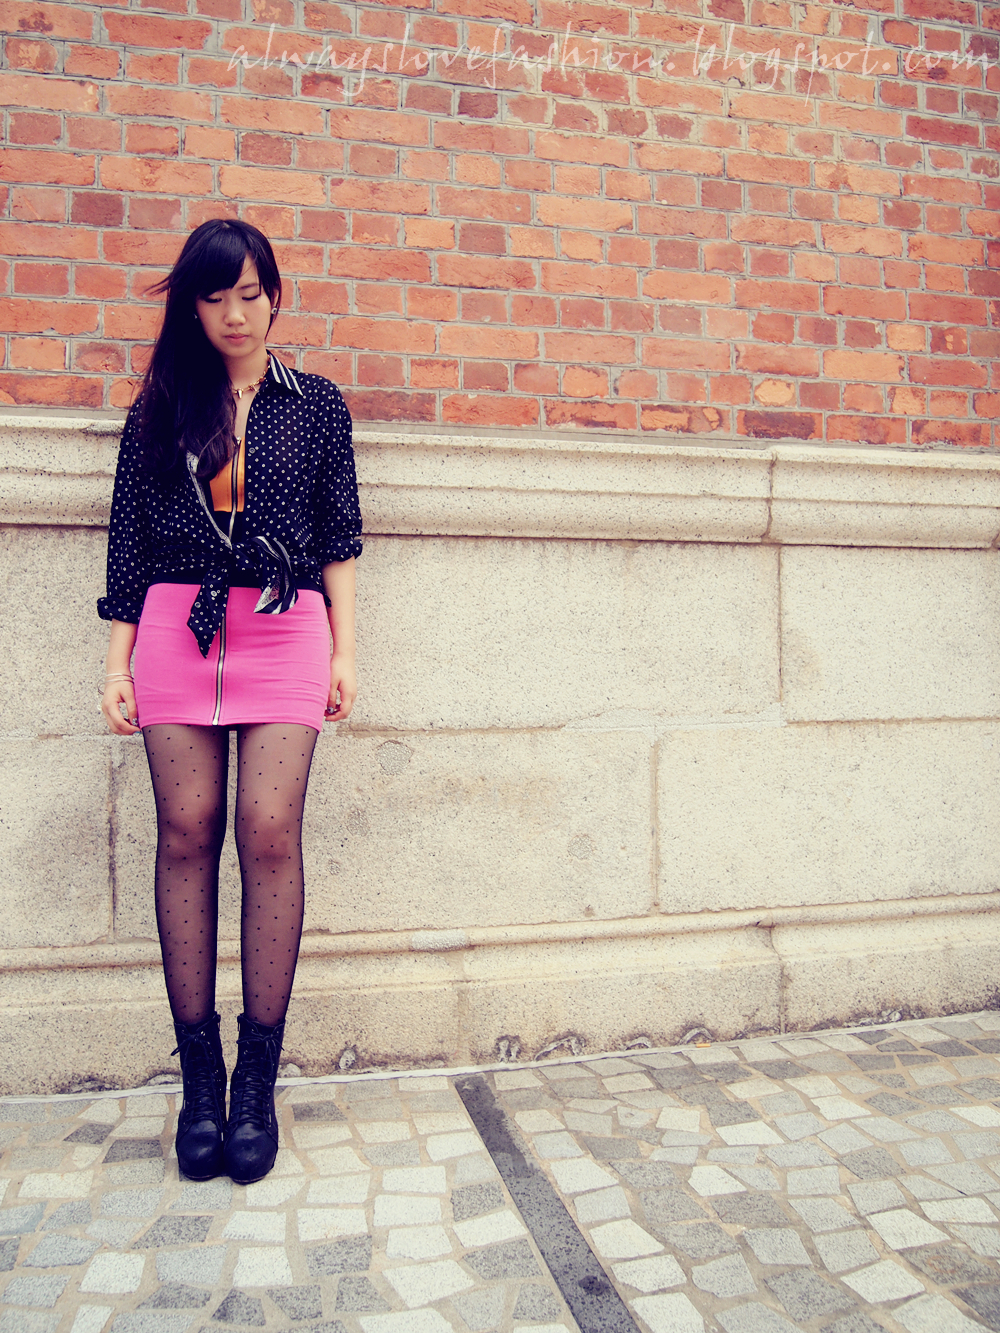 The Exterior Lock: 17th Birthday And Outfit Of The Day